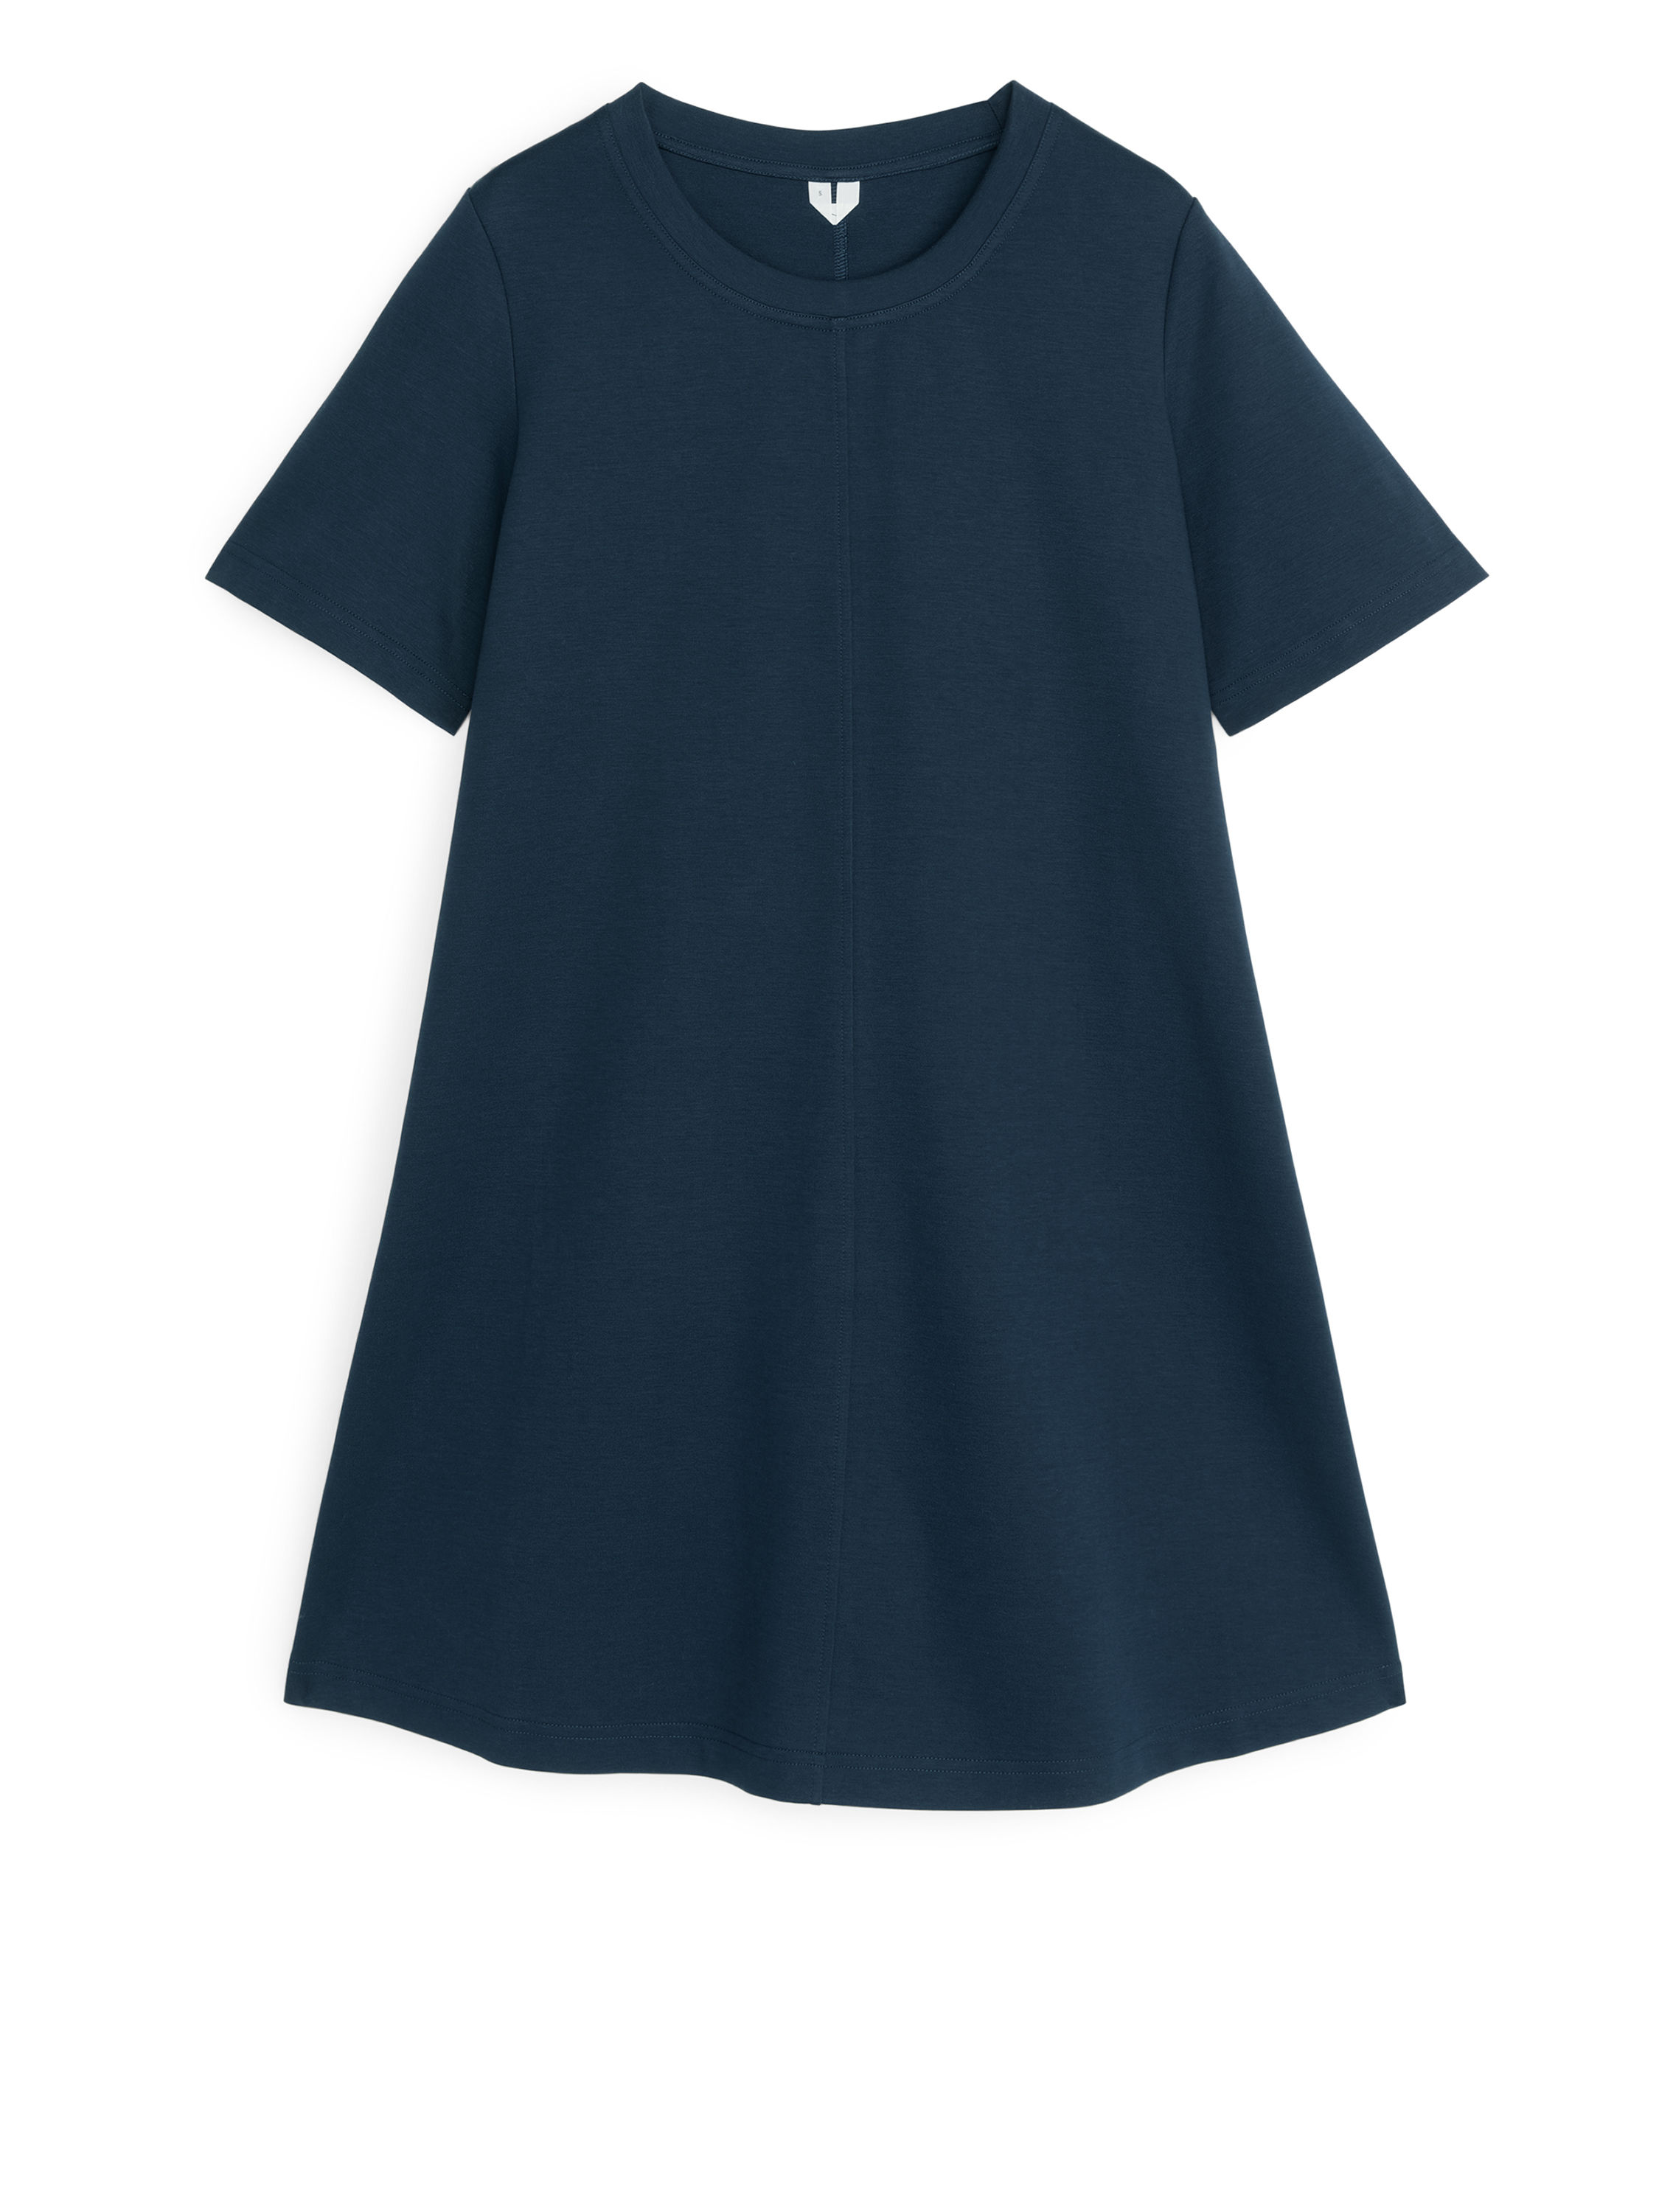 Fabric Swatch image of Arket no img-interlock t-shirt dress in blue